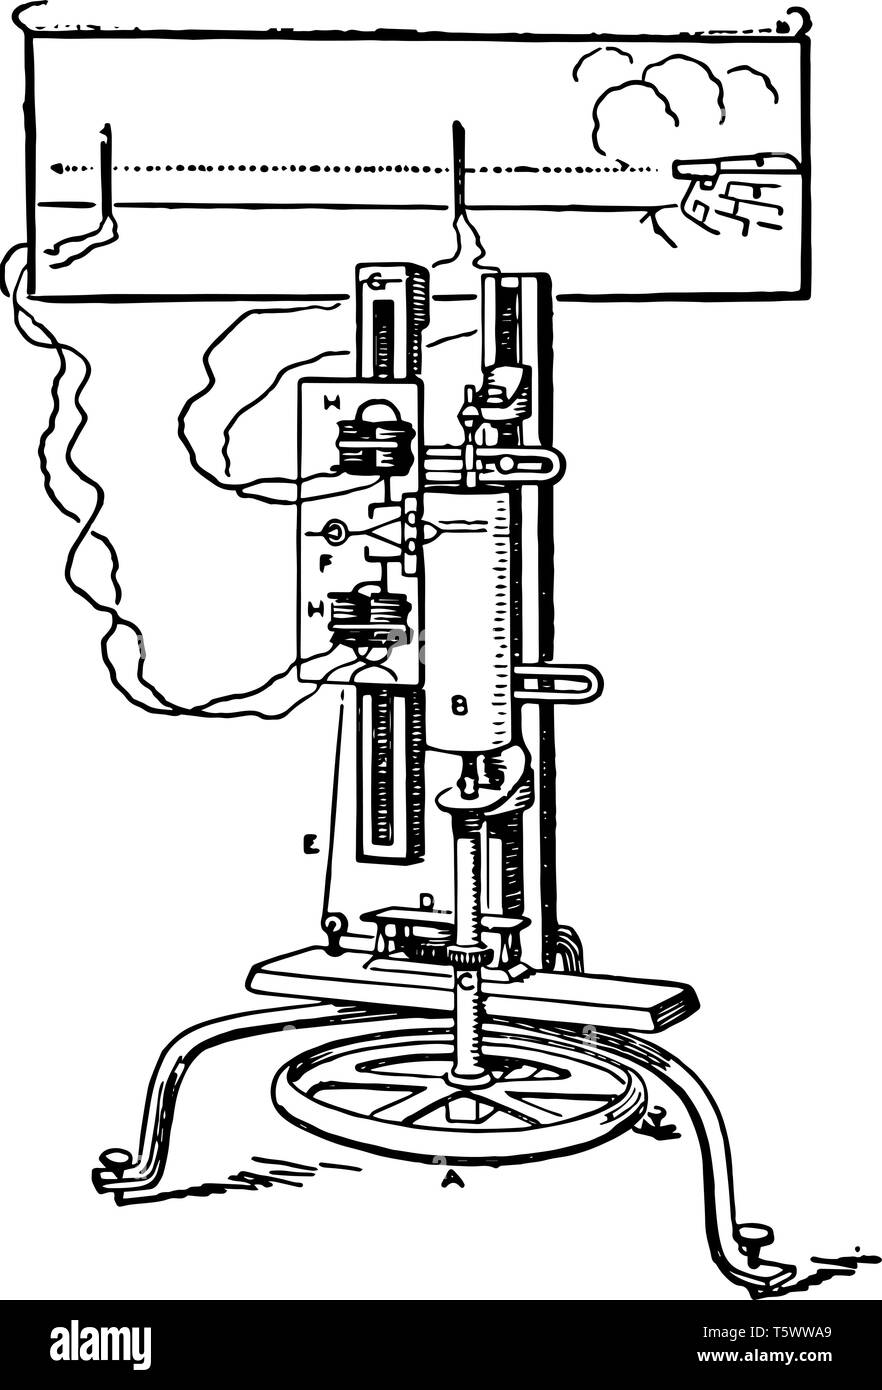 This illustration represents function of Bashforth Chronograph which unwinds the spring, vintage line drawing or engraving illustration. - Stock Image